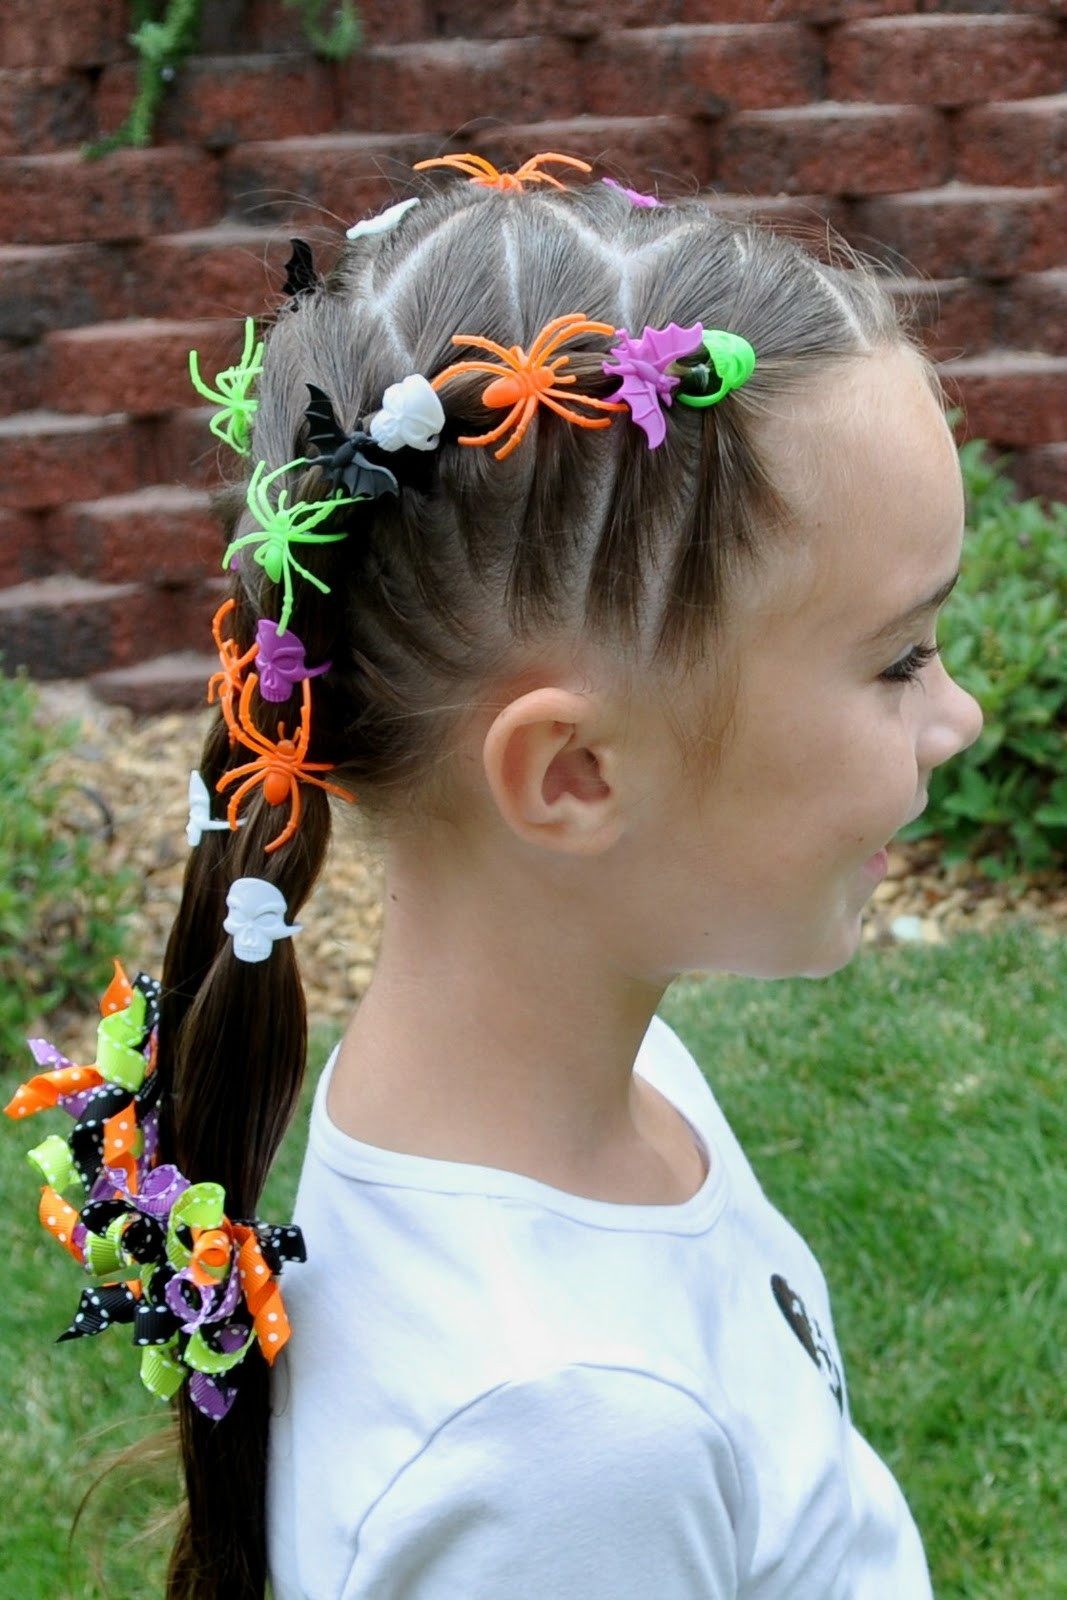 Best ideas about Halloween Hairstyles . Save or Pin Princess Piggies Halloween Hairdos Spider Rings Now.